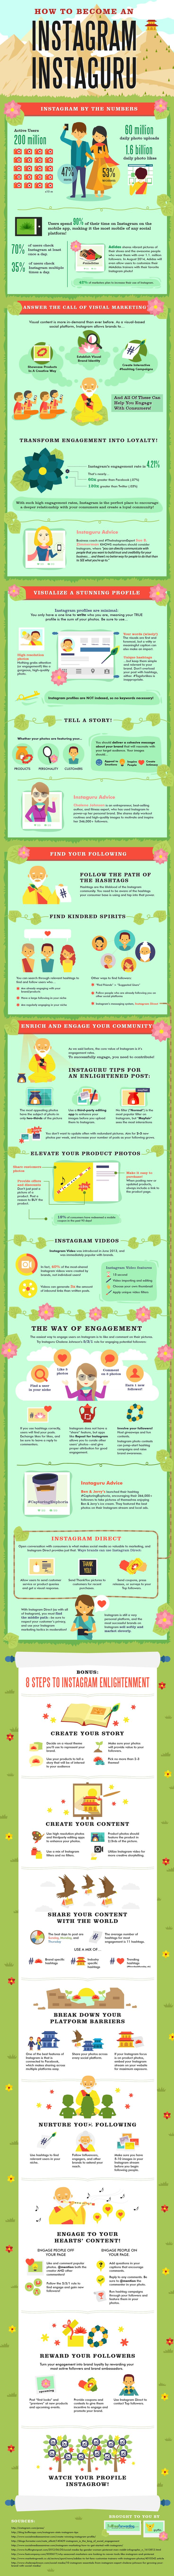 How to become a Instagram Instaguru [INFOGRAPHIC] social media